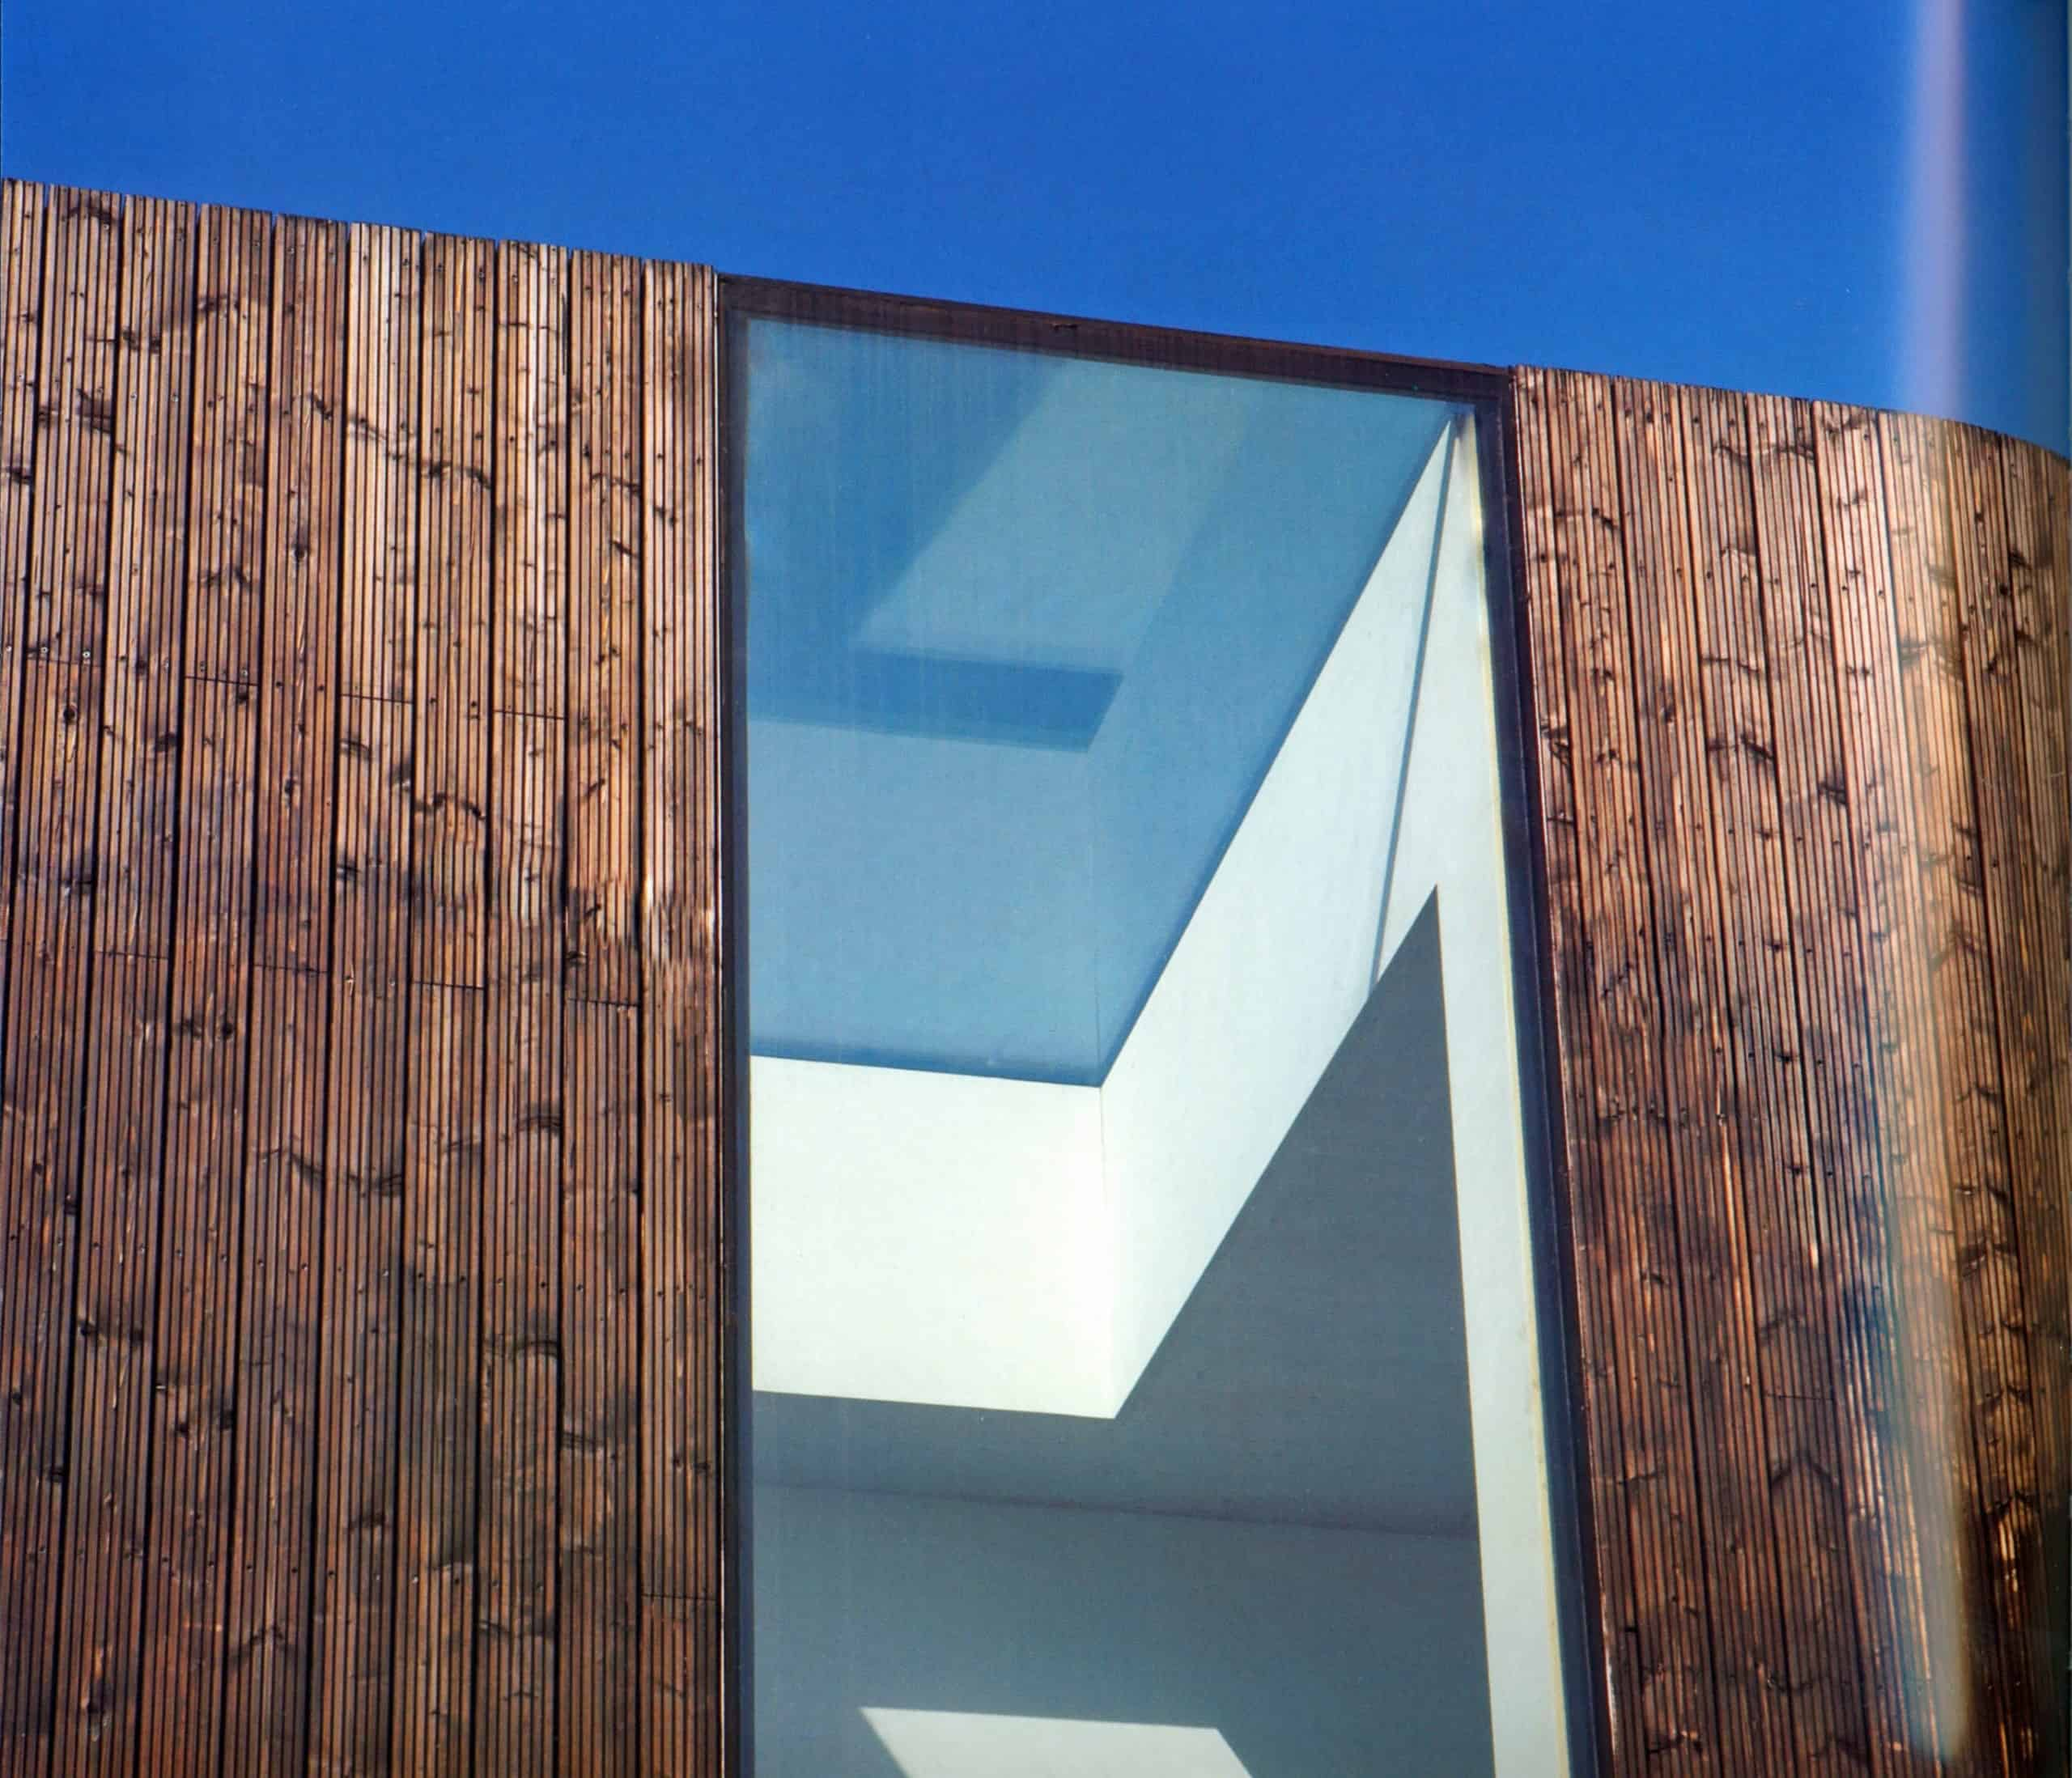 sustainable green eco-friendly energy-efficient architectural design expert services & product sale by INDOOR Architecture. London UK